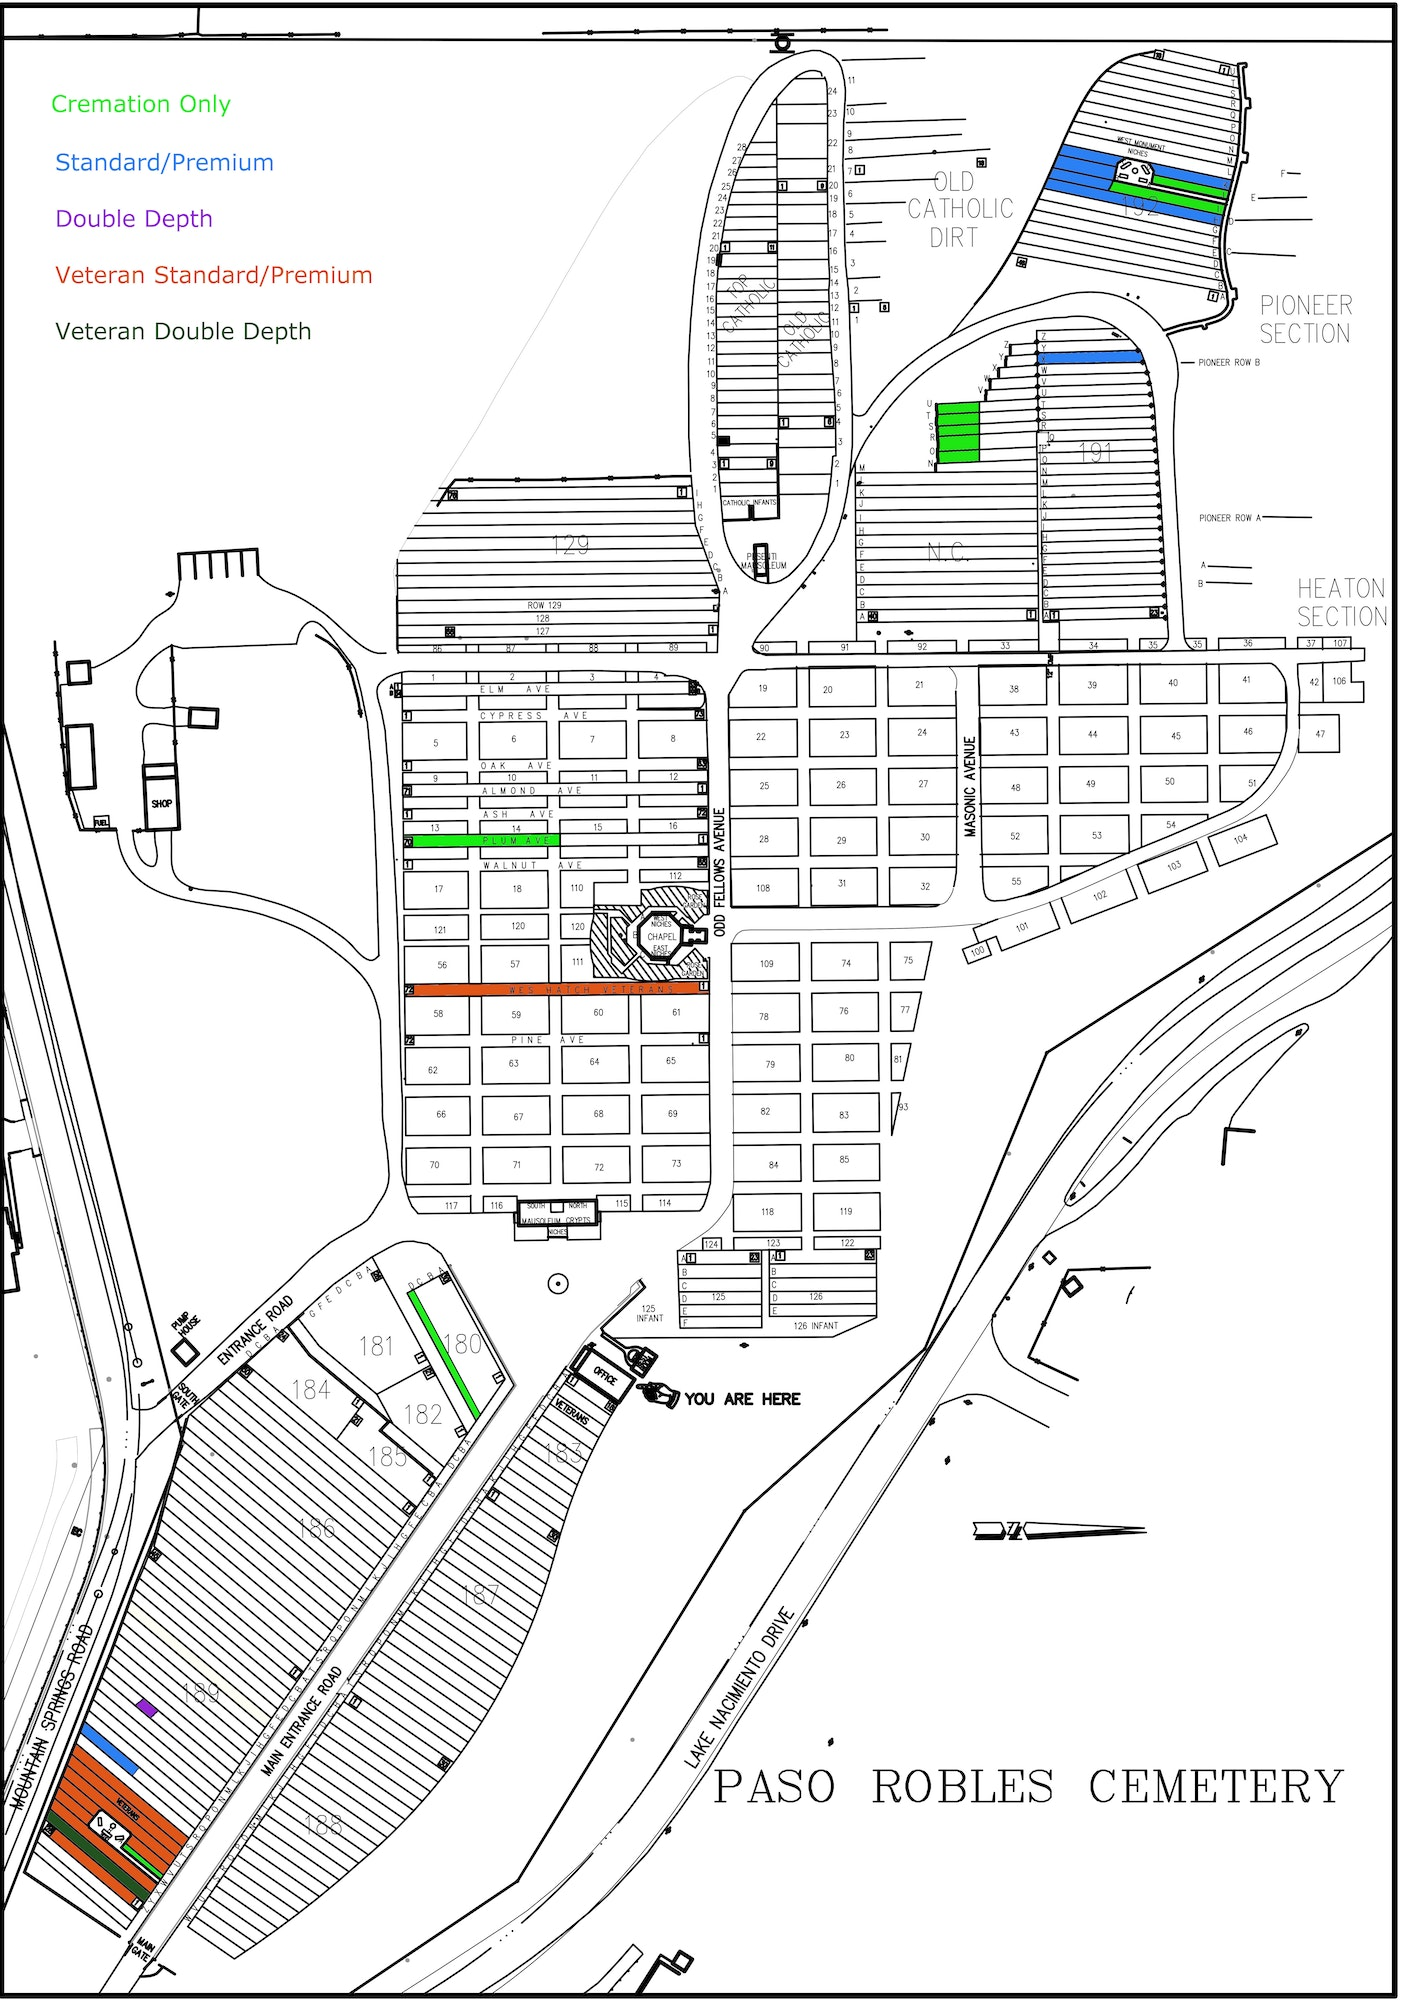 Map of Cemetery Grounds